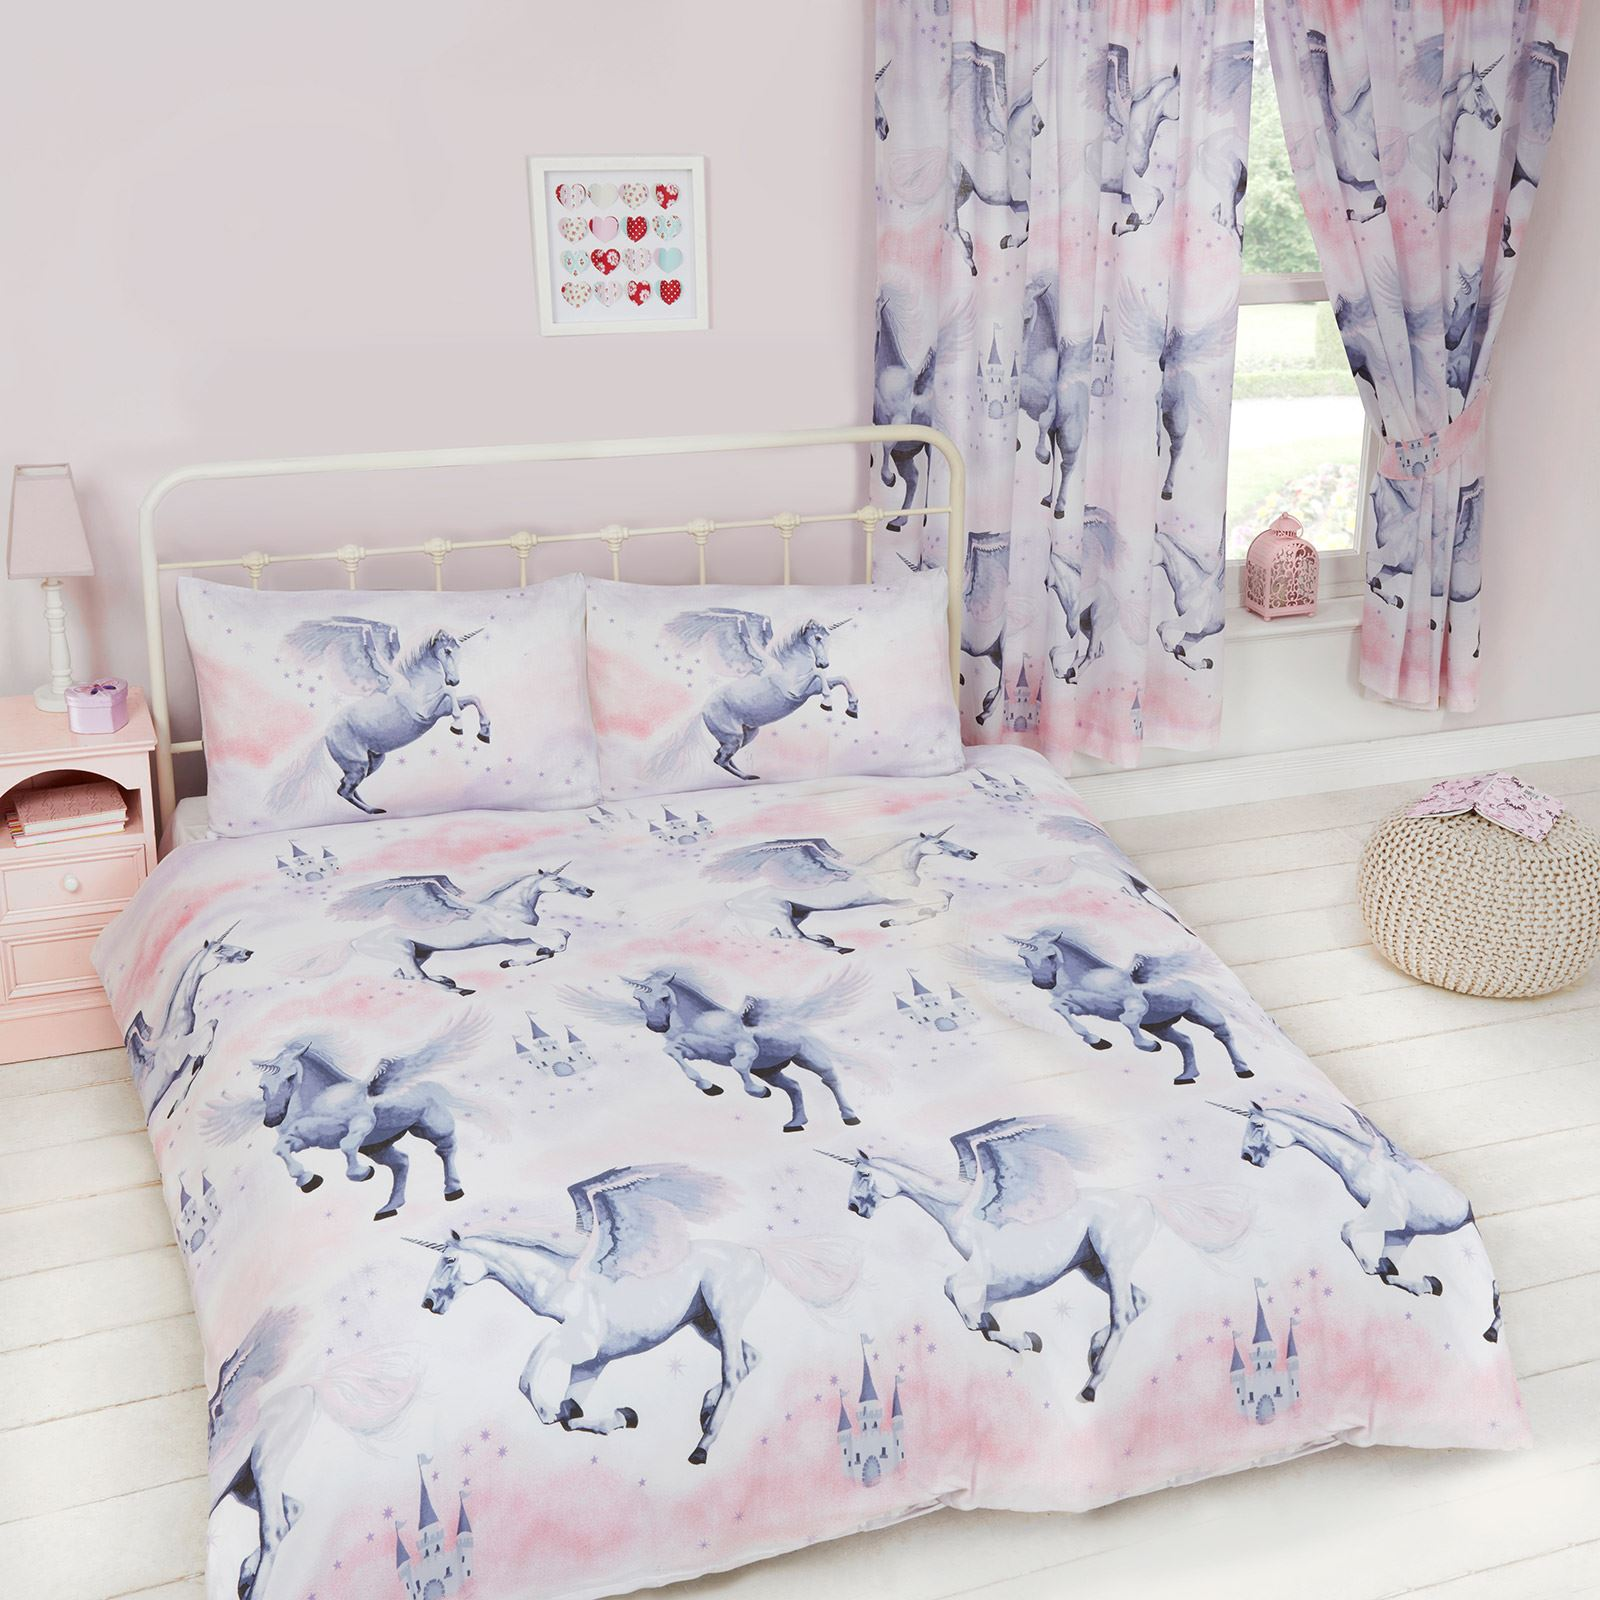 STARDUST-UNICORN-DUVET-COVER-SETS-amp-MATCHING-CURTAINS-